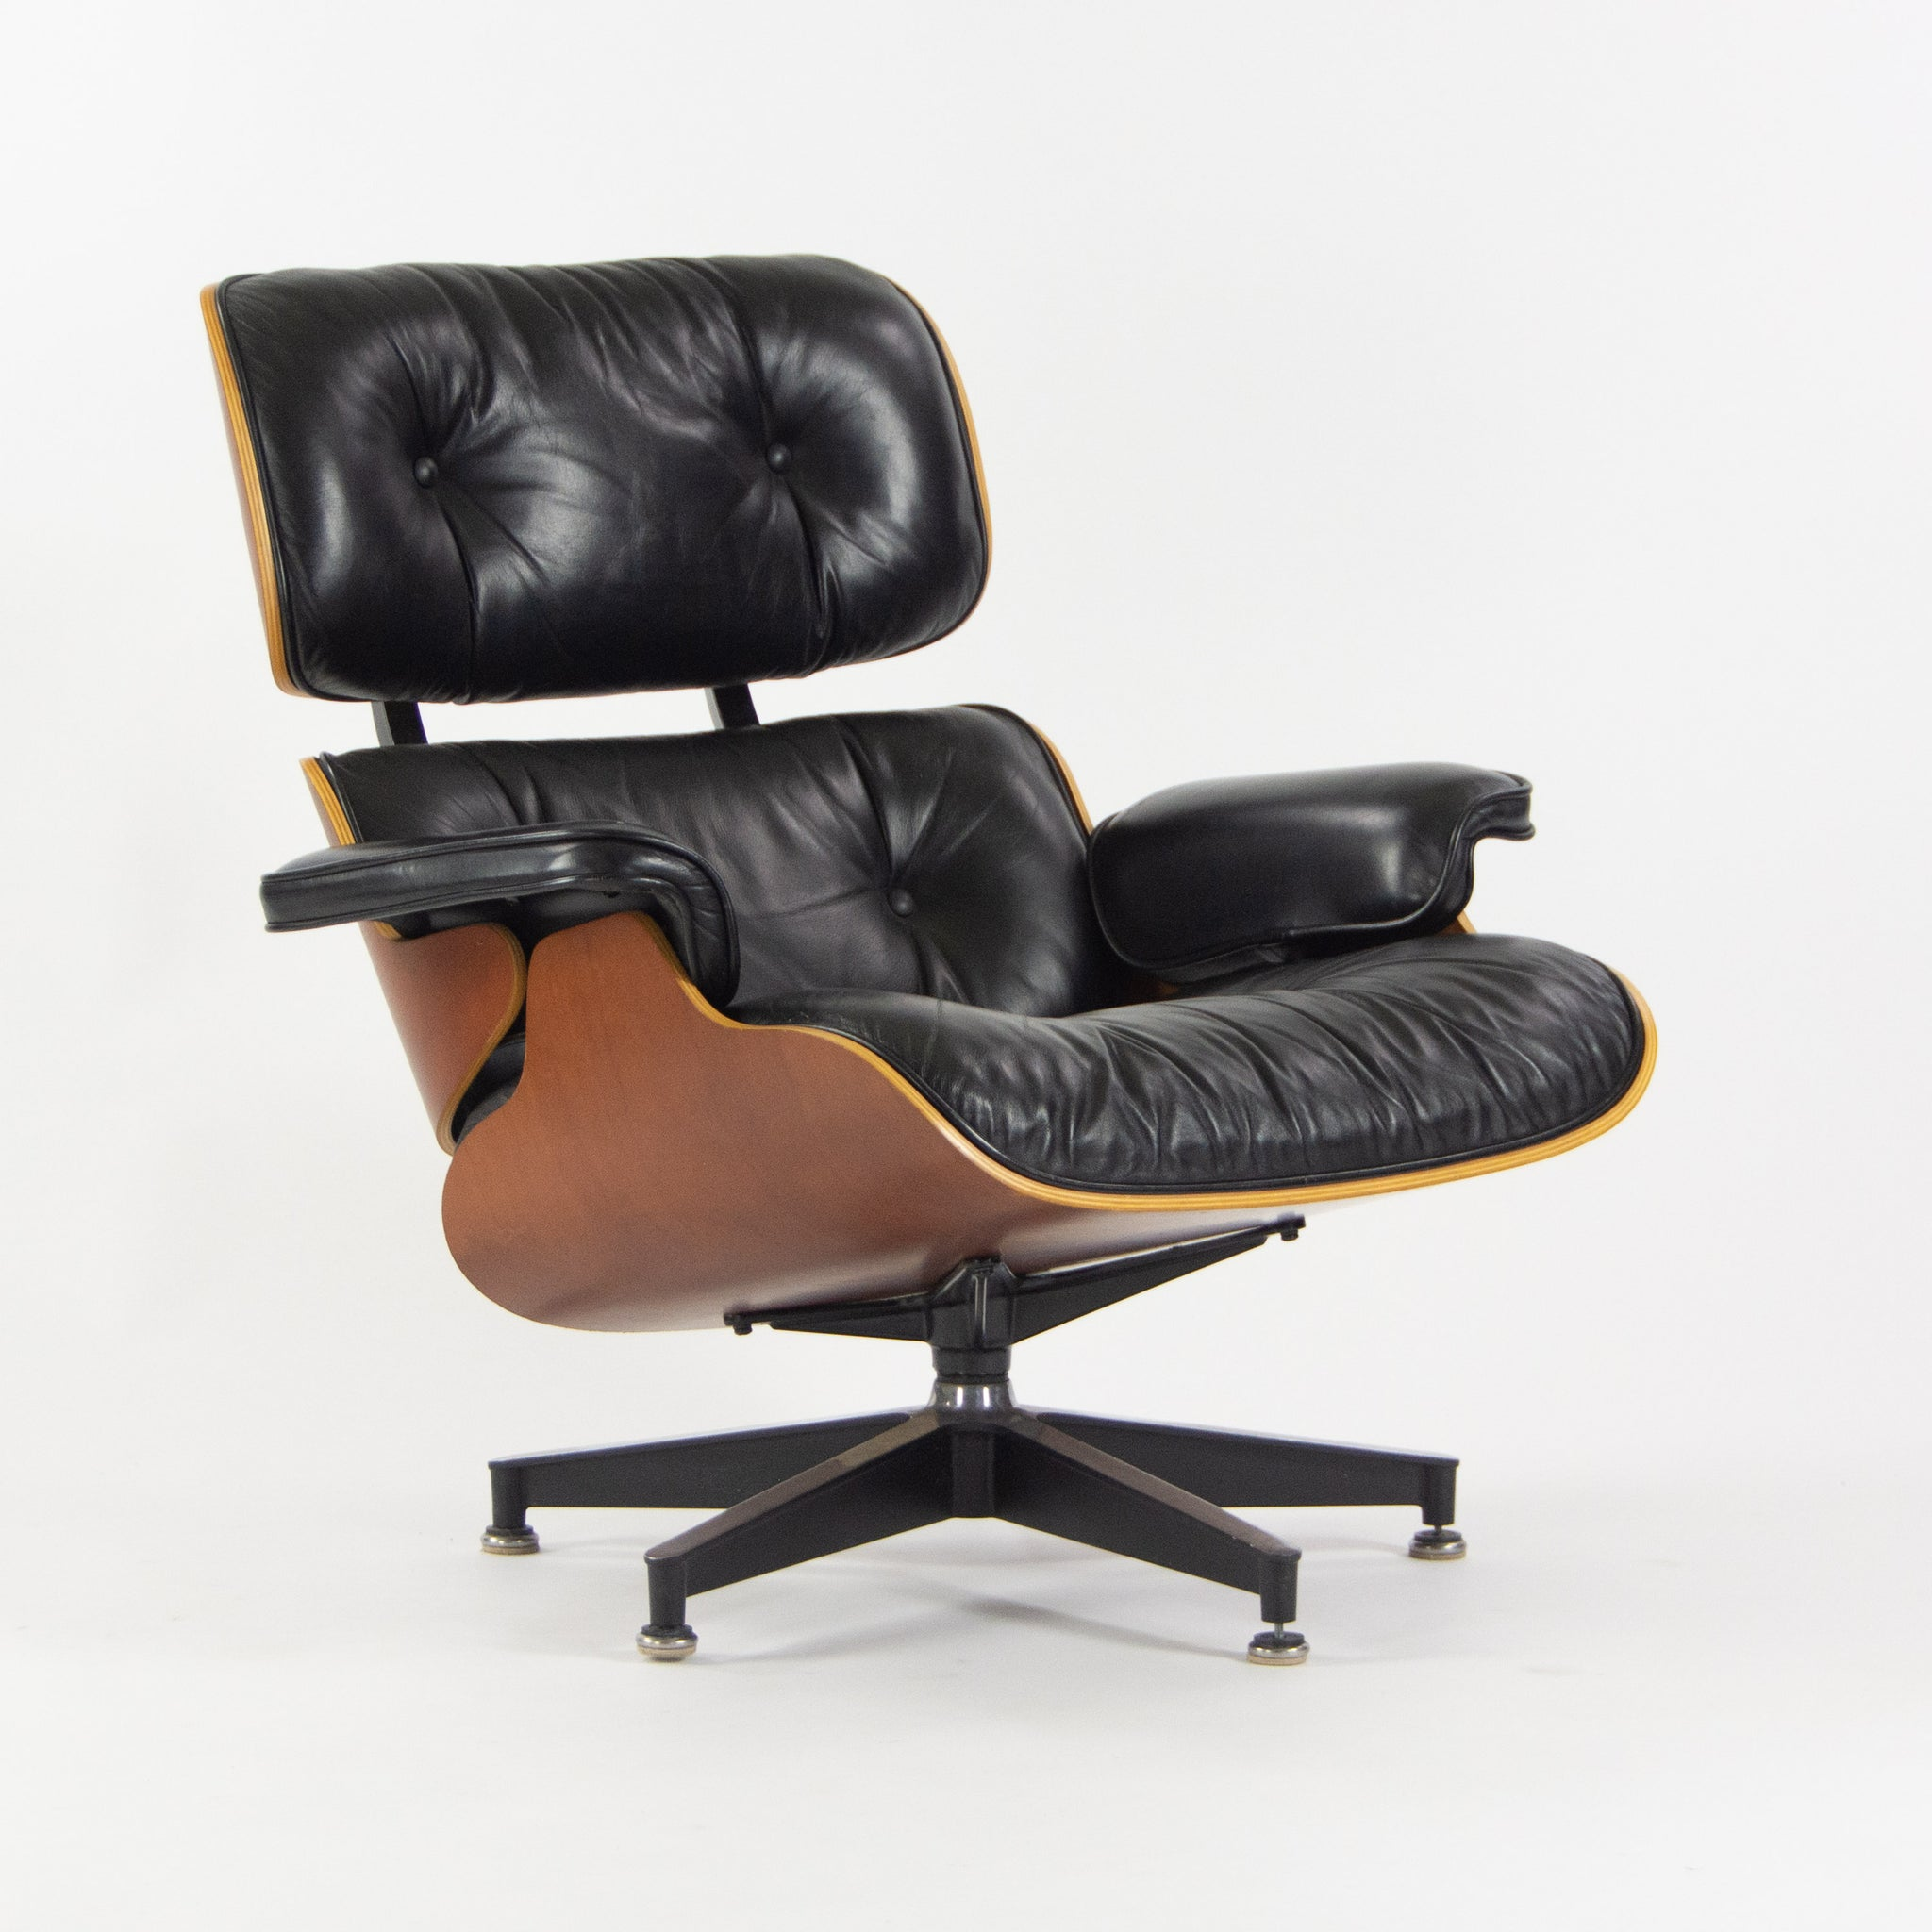 1990s Herman Miller Eames Lounge Chair and Ottoman Cherry Black Leather 670 671